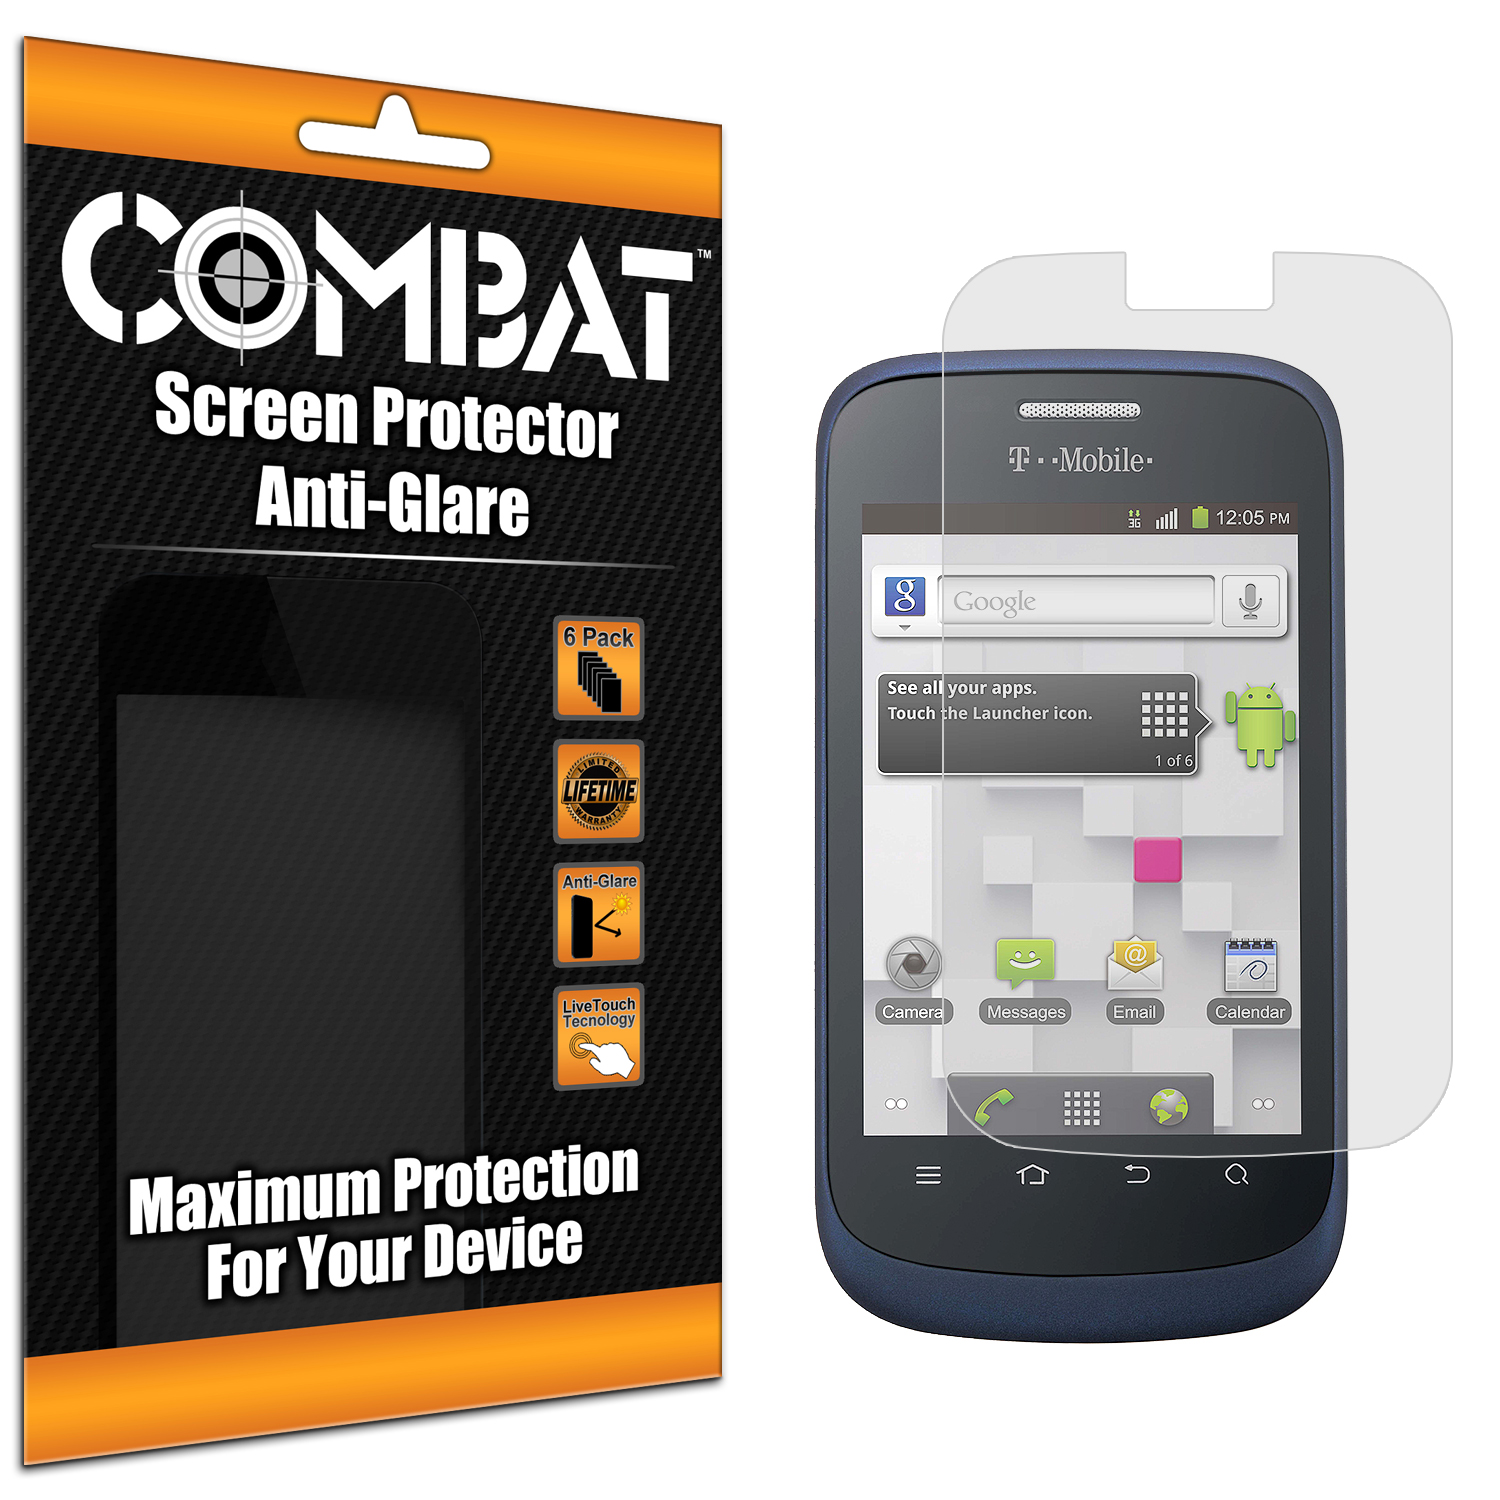 ZTE Concord Combat 6 Pack Anti-Glare Matte Screen Protector